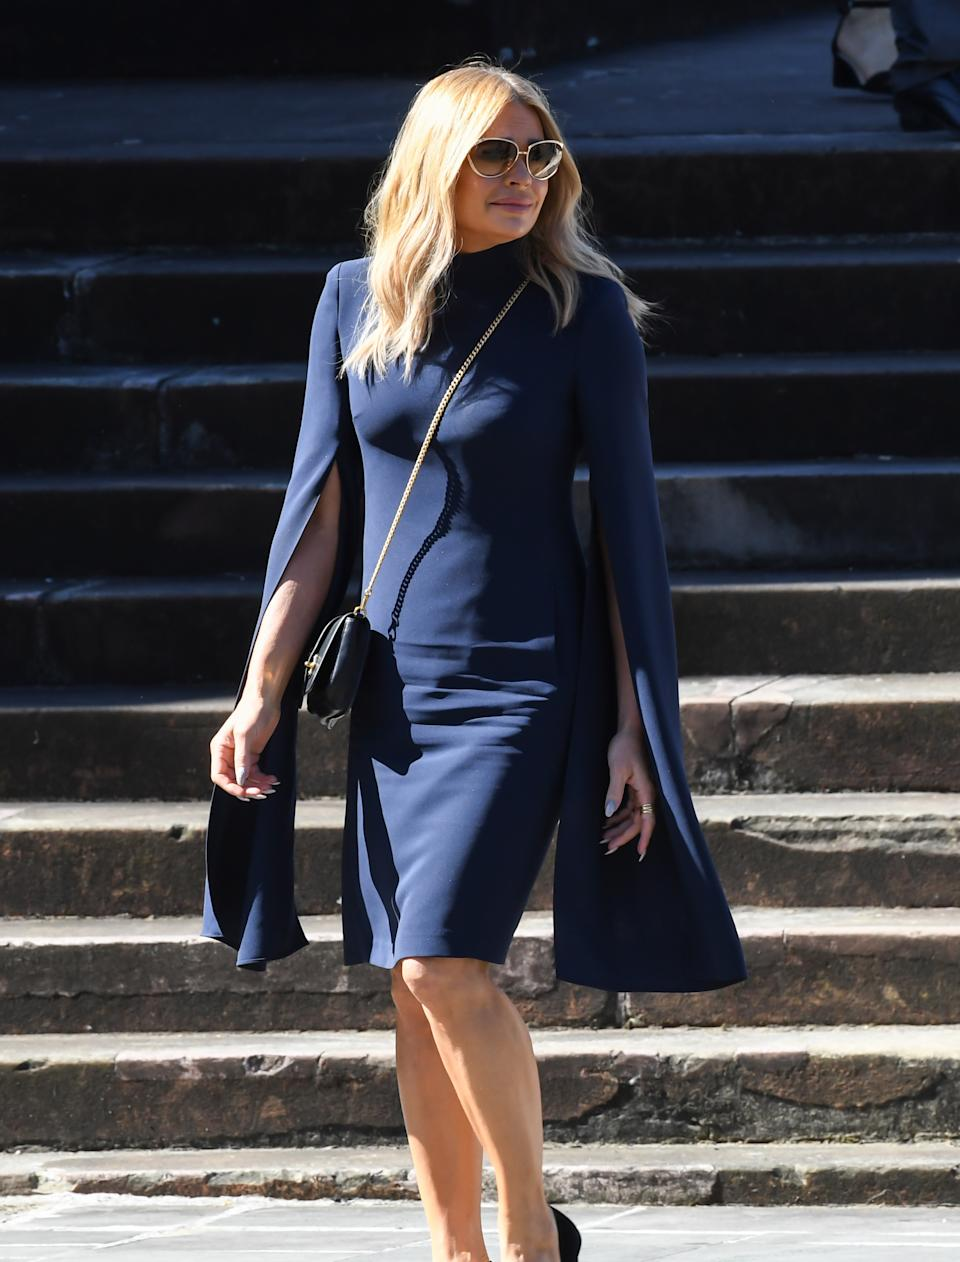 Sonia Kruger watches as the hearse departs at the State Funeral for Carla Zampatti at St Mary's Cathedral on April 15, 2021 in Sydney, Australia.